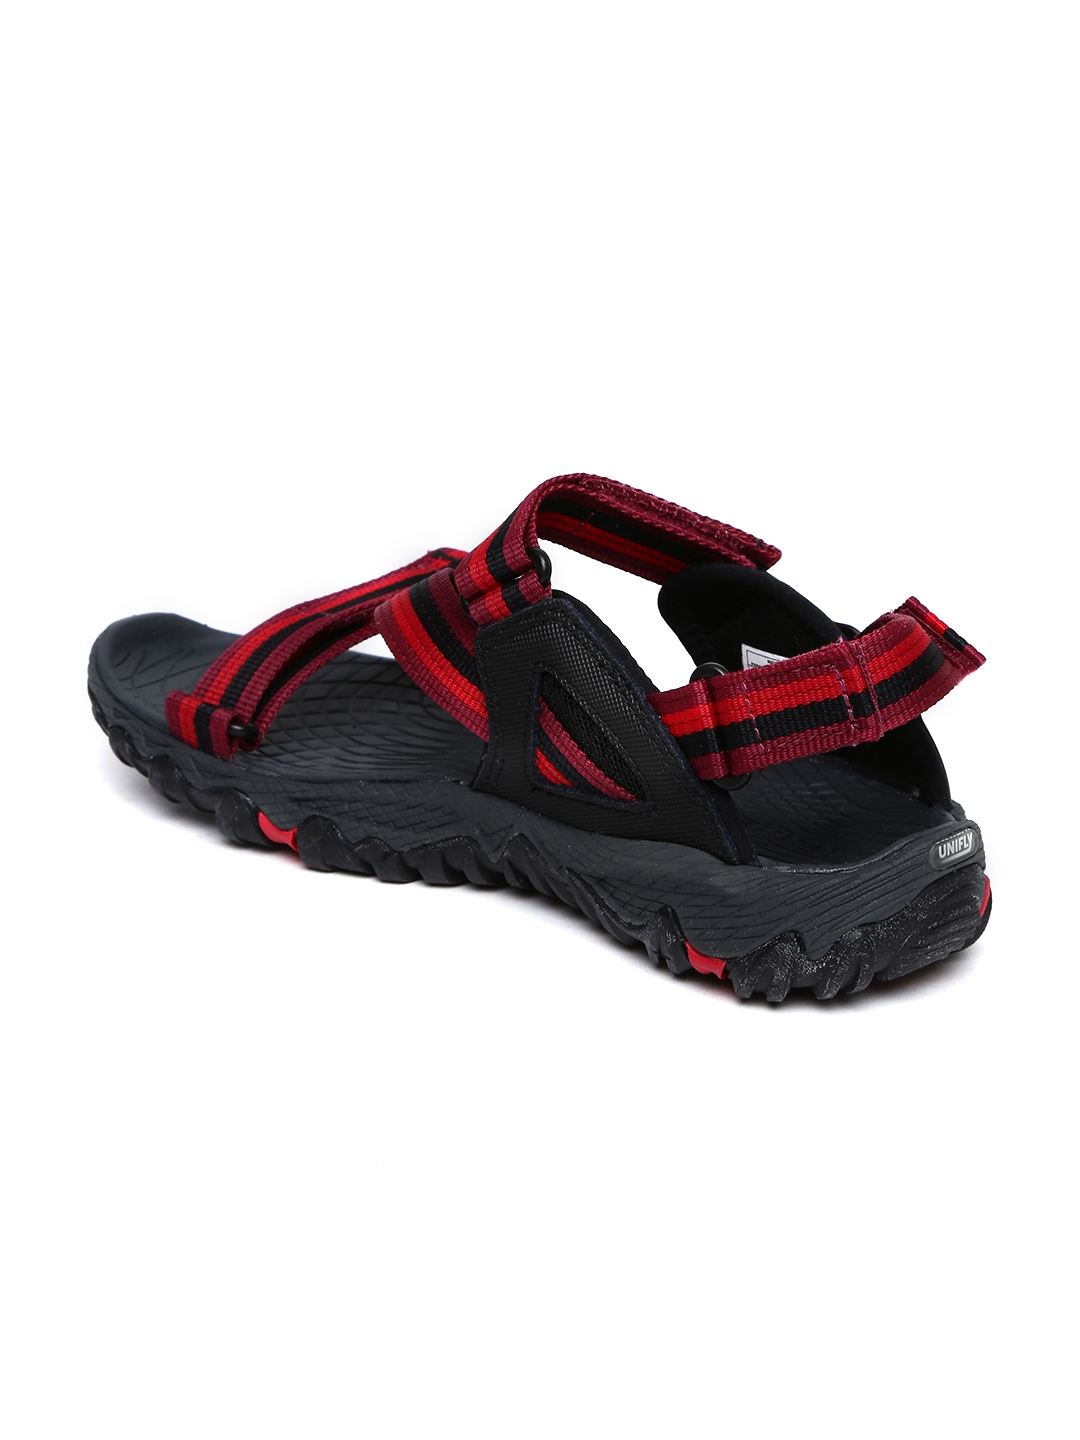 f80a9775d8f Buy Merrell Women Red   Black All Out Blaze Web Sports Sandals ...